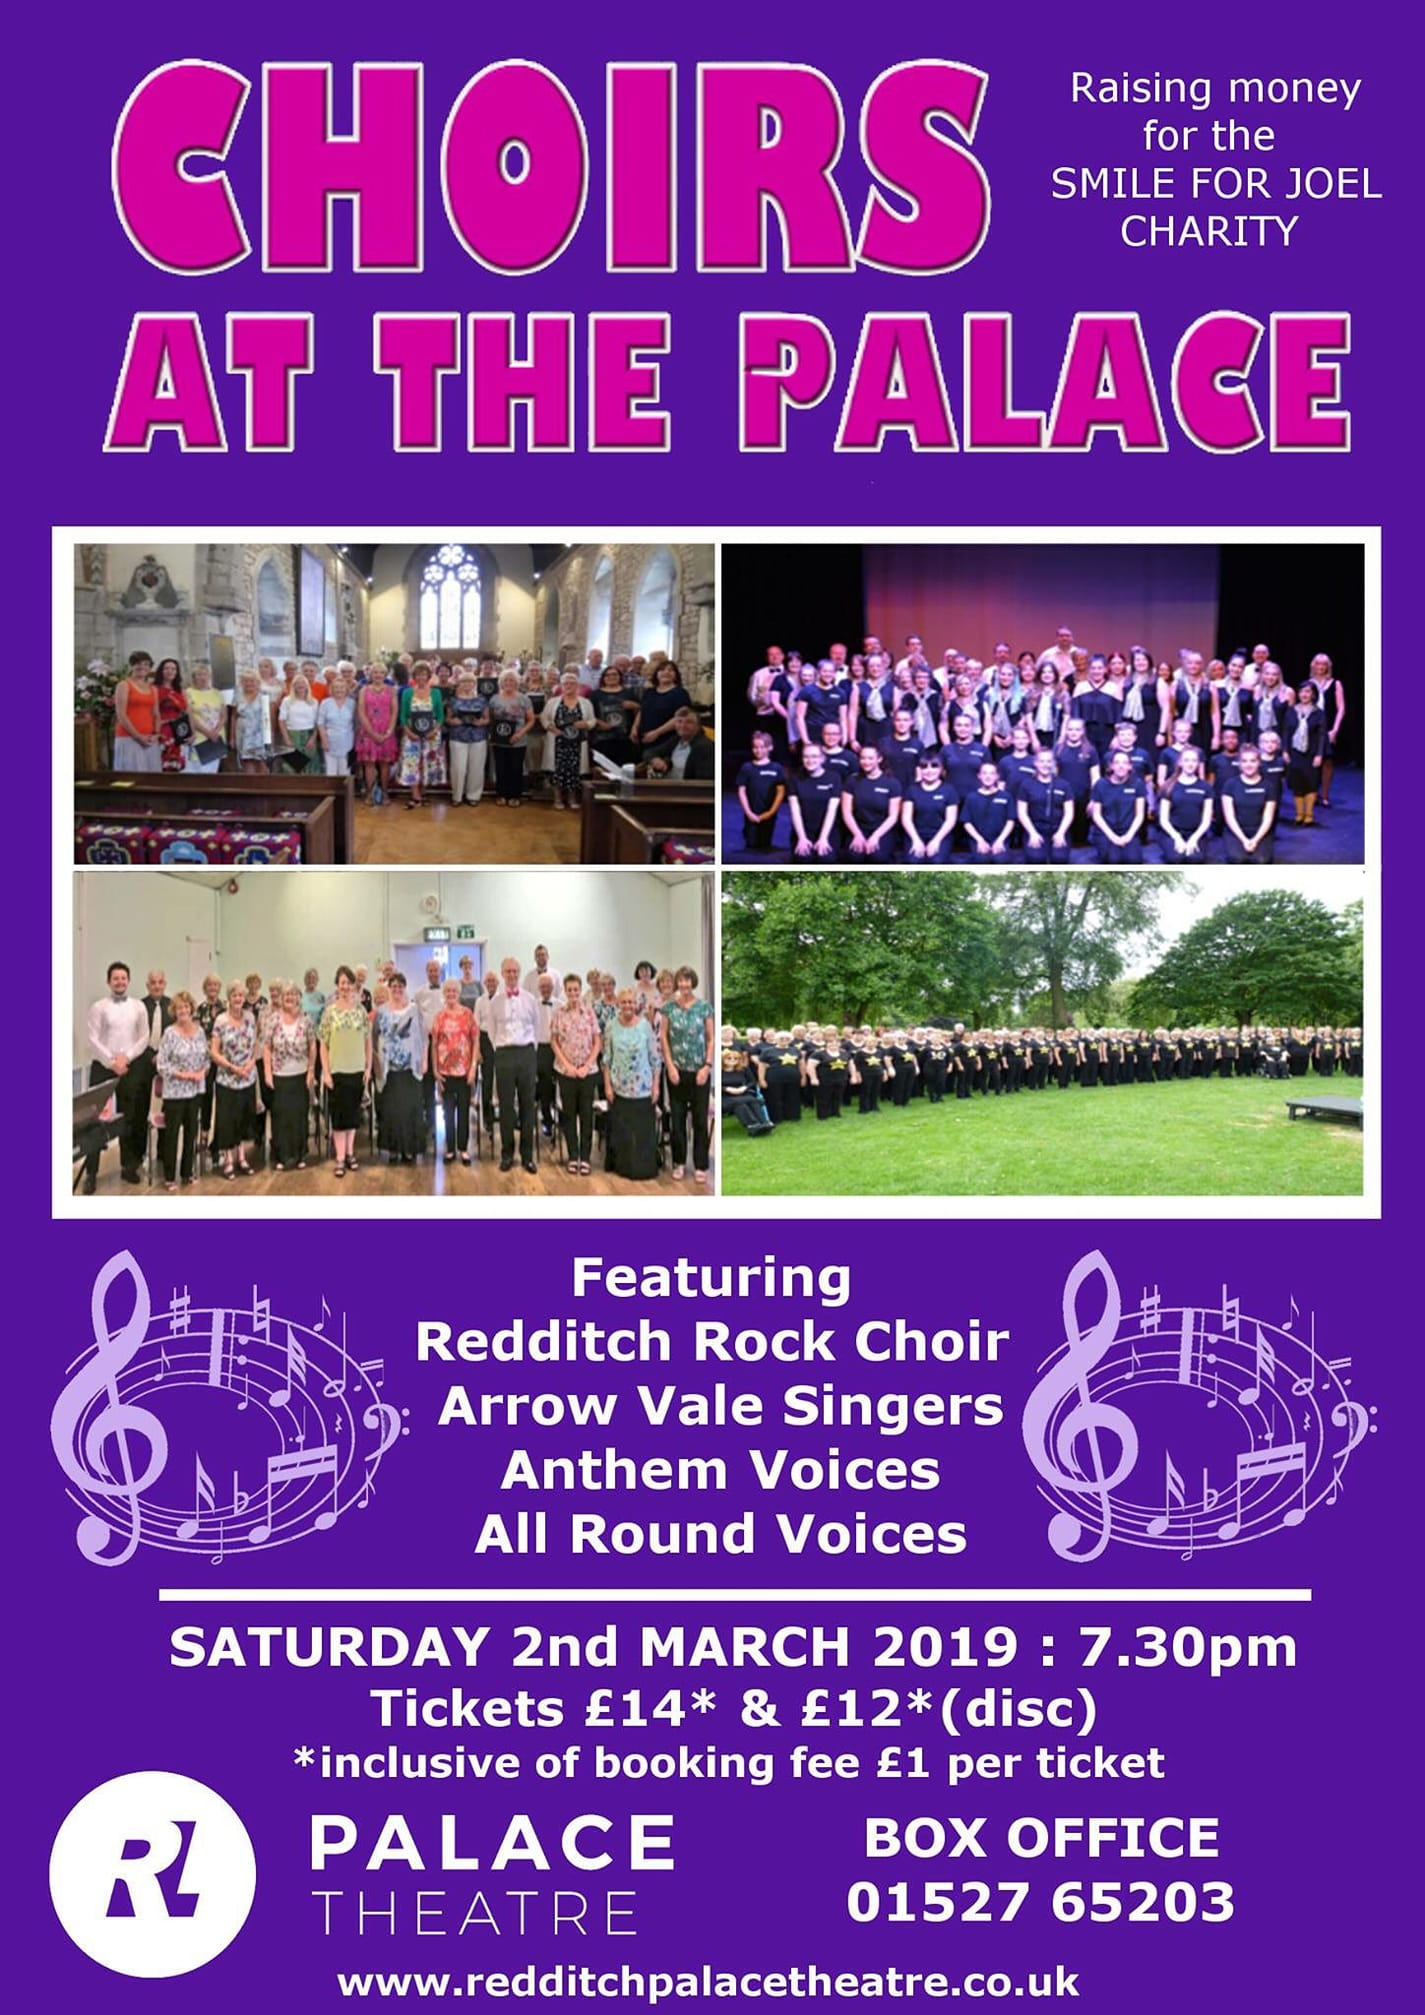 Choirs at the Palace Poster